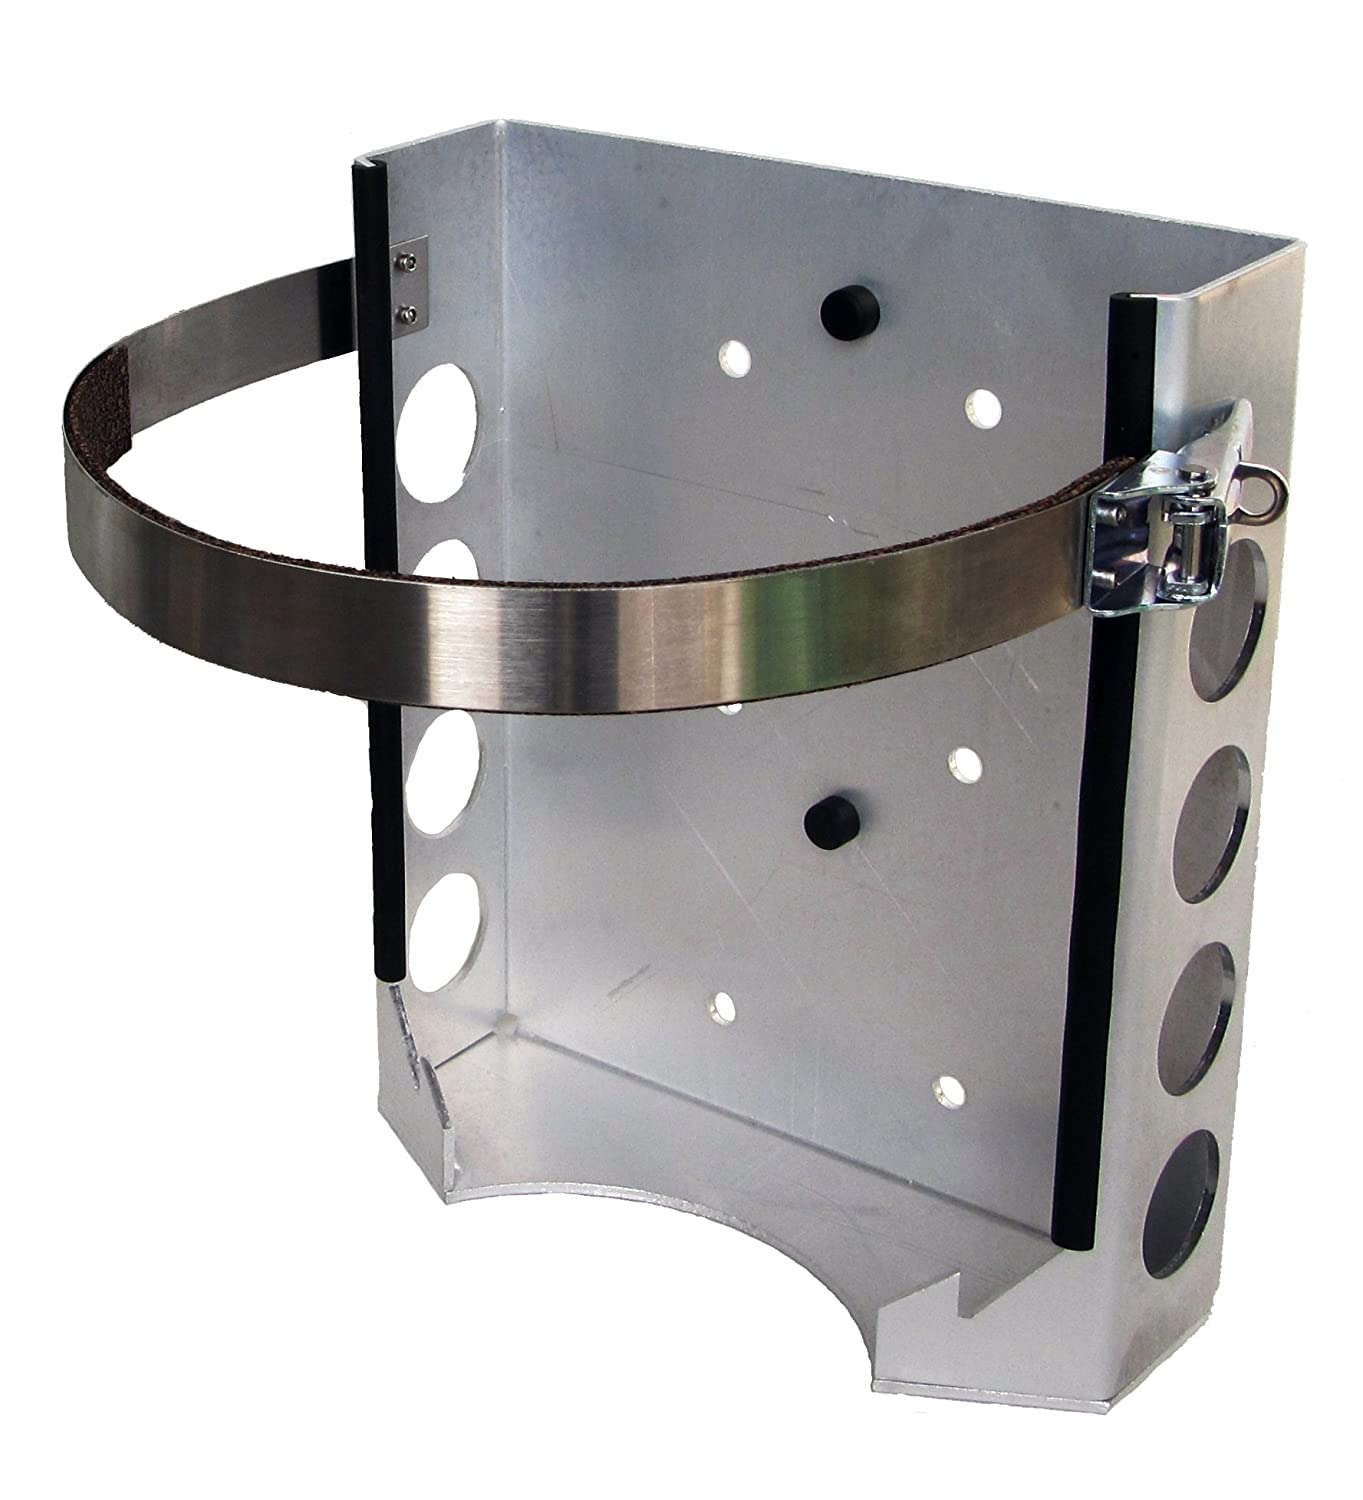 Propane (BKT-2286) Mounting Bracket, Fits 11 lb. Worthington (2.5 gallon) Propane (LP) tank or the Manchester 10 lb. with a 9' diameter Propane tank Power Tank